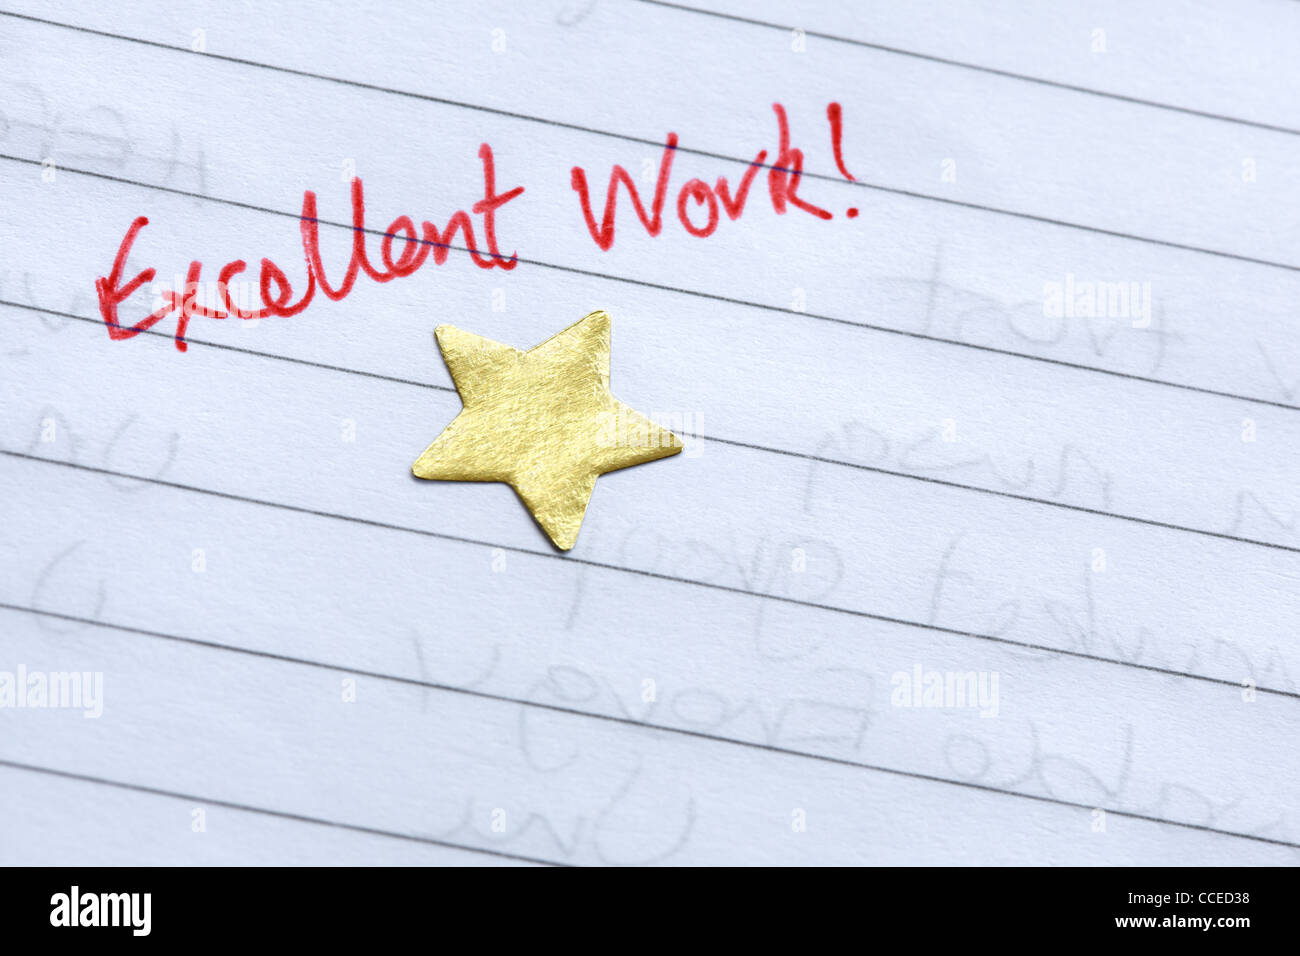 Gold star award Stockbild